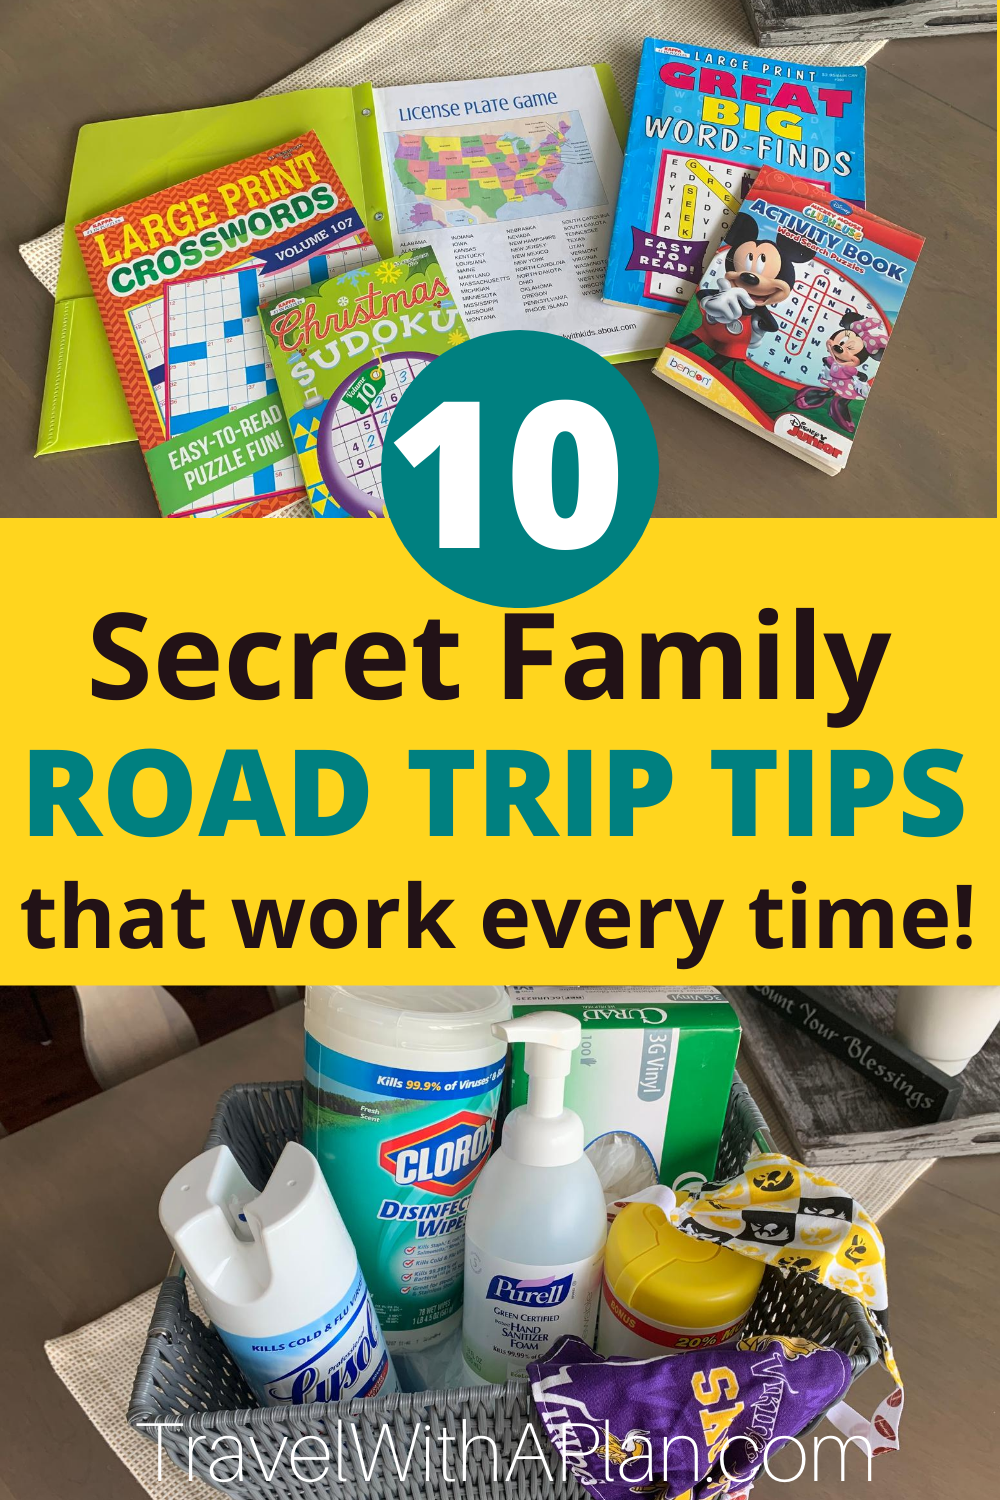 After years of successful family travel, we're sharing our Top 10 Tips for Planning A Family Road Trip!  Get our secret money and sanity saving tips that have allowed us to take successful 24 hour road trips!  #familyroadtriptips #tipsforafamilyroadtrip #familyroadtrip #howtotakeafamilyroadtrip #familytraveltips #roadtripessentials